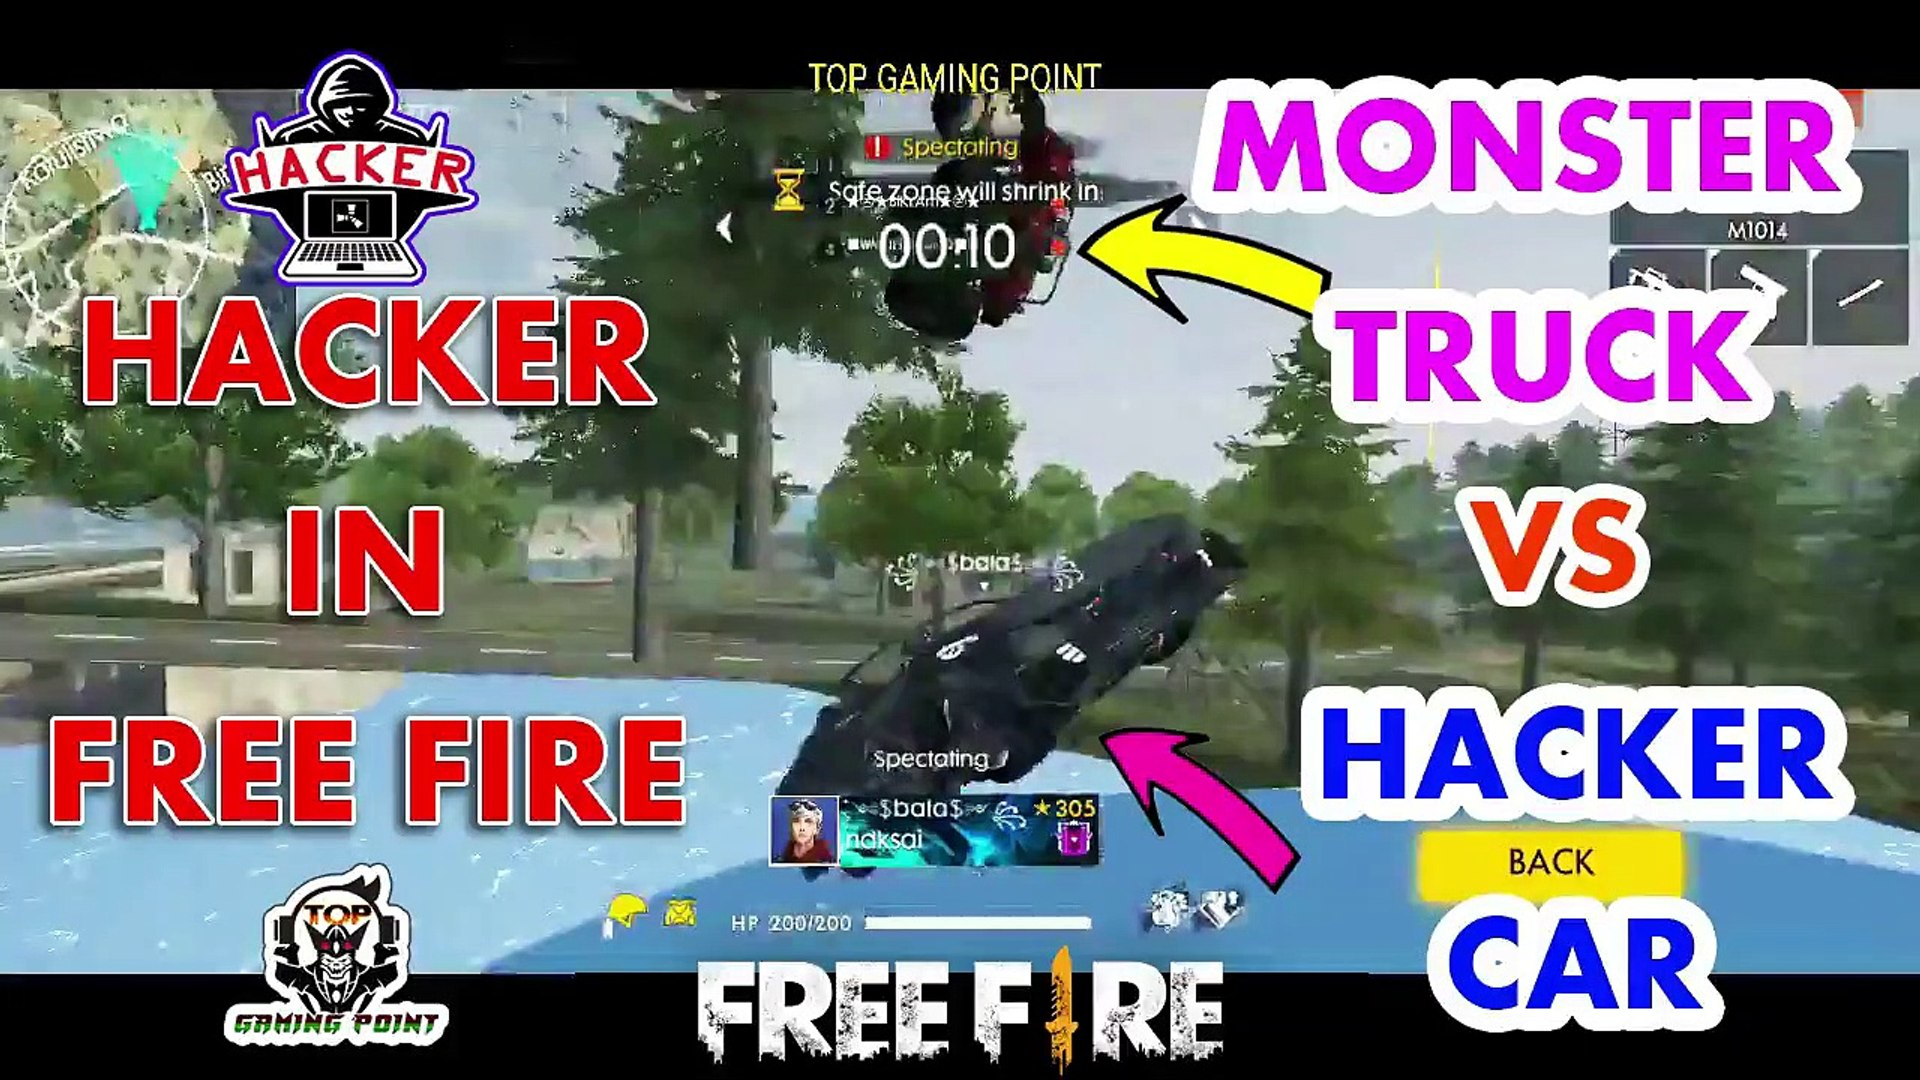 MONSTER TRUCK VS HACKER CAR (HACKER IN FREE FIRE ) || TOP GAMING POINT || TgpYT